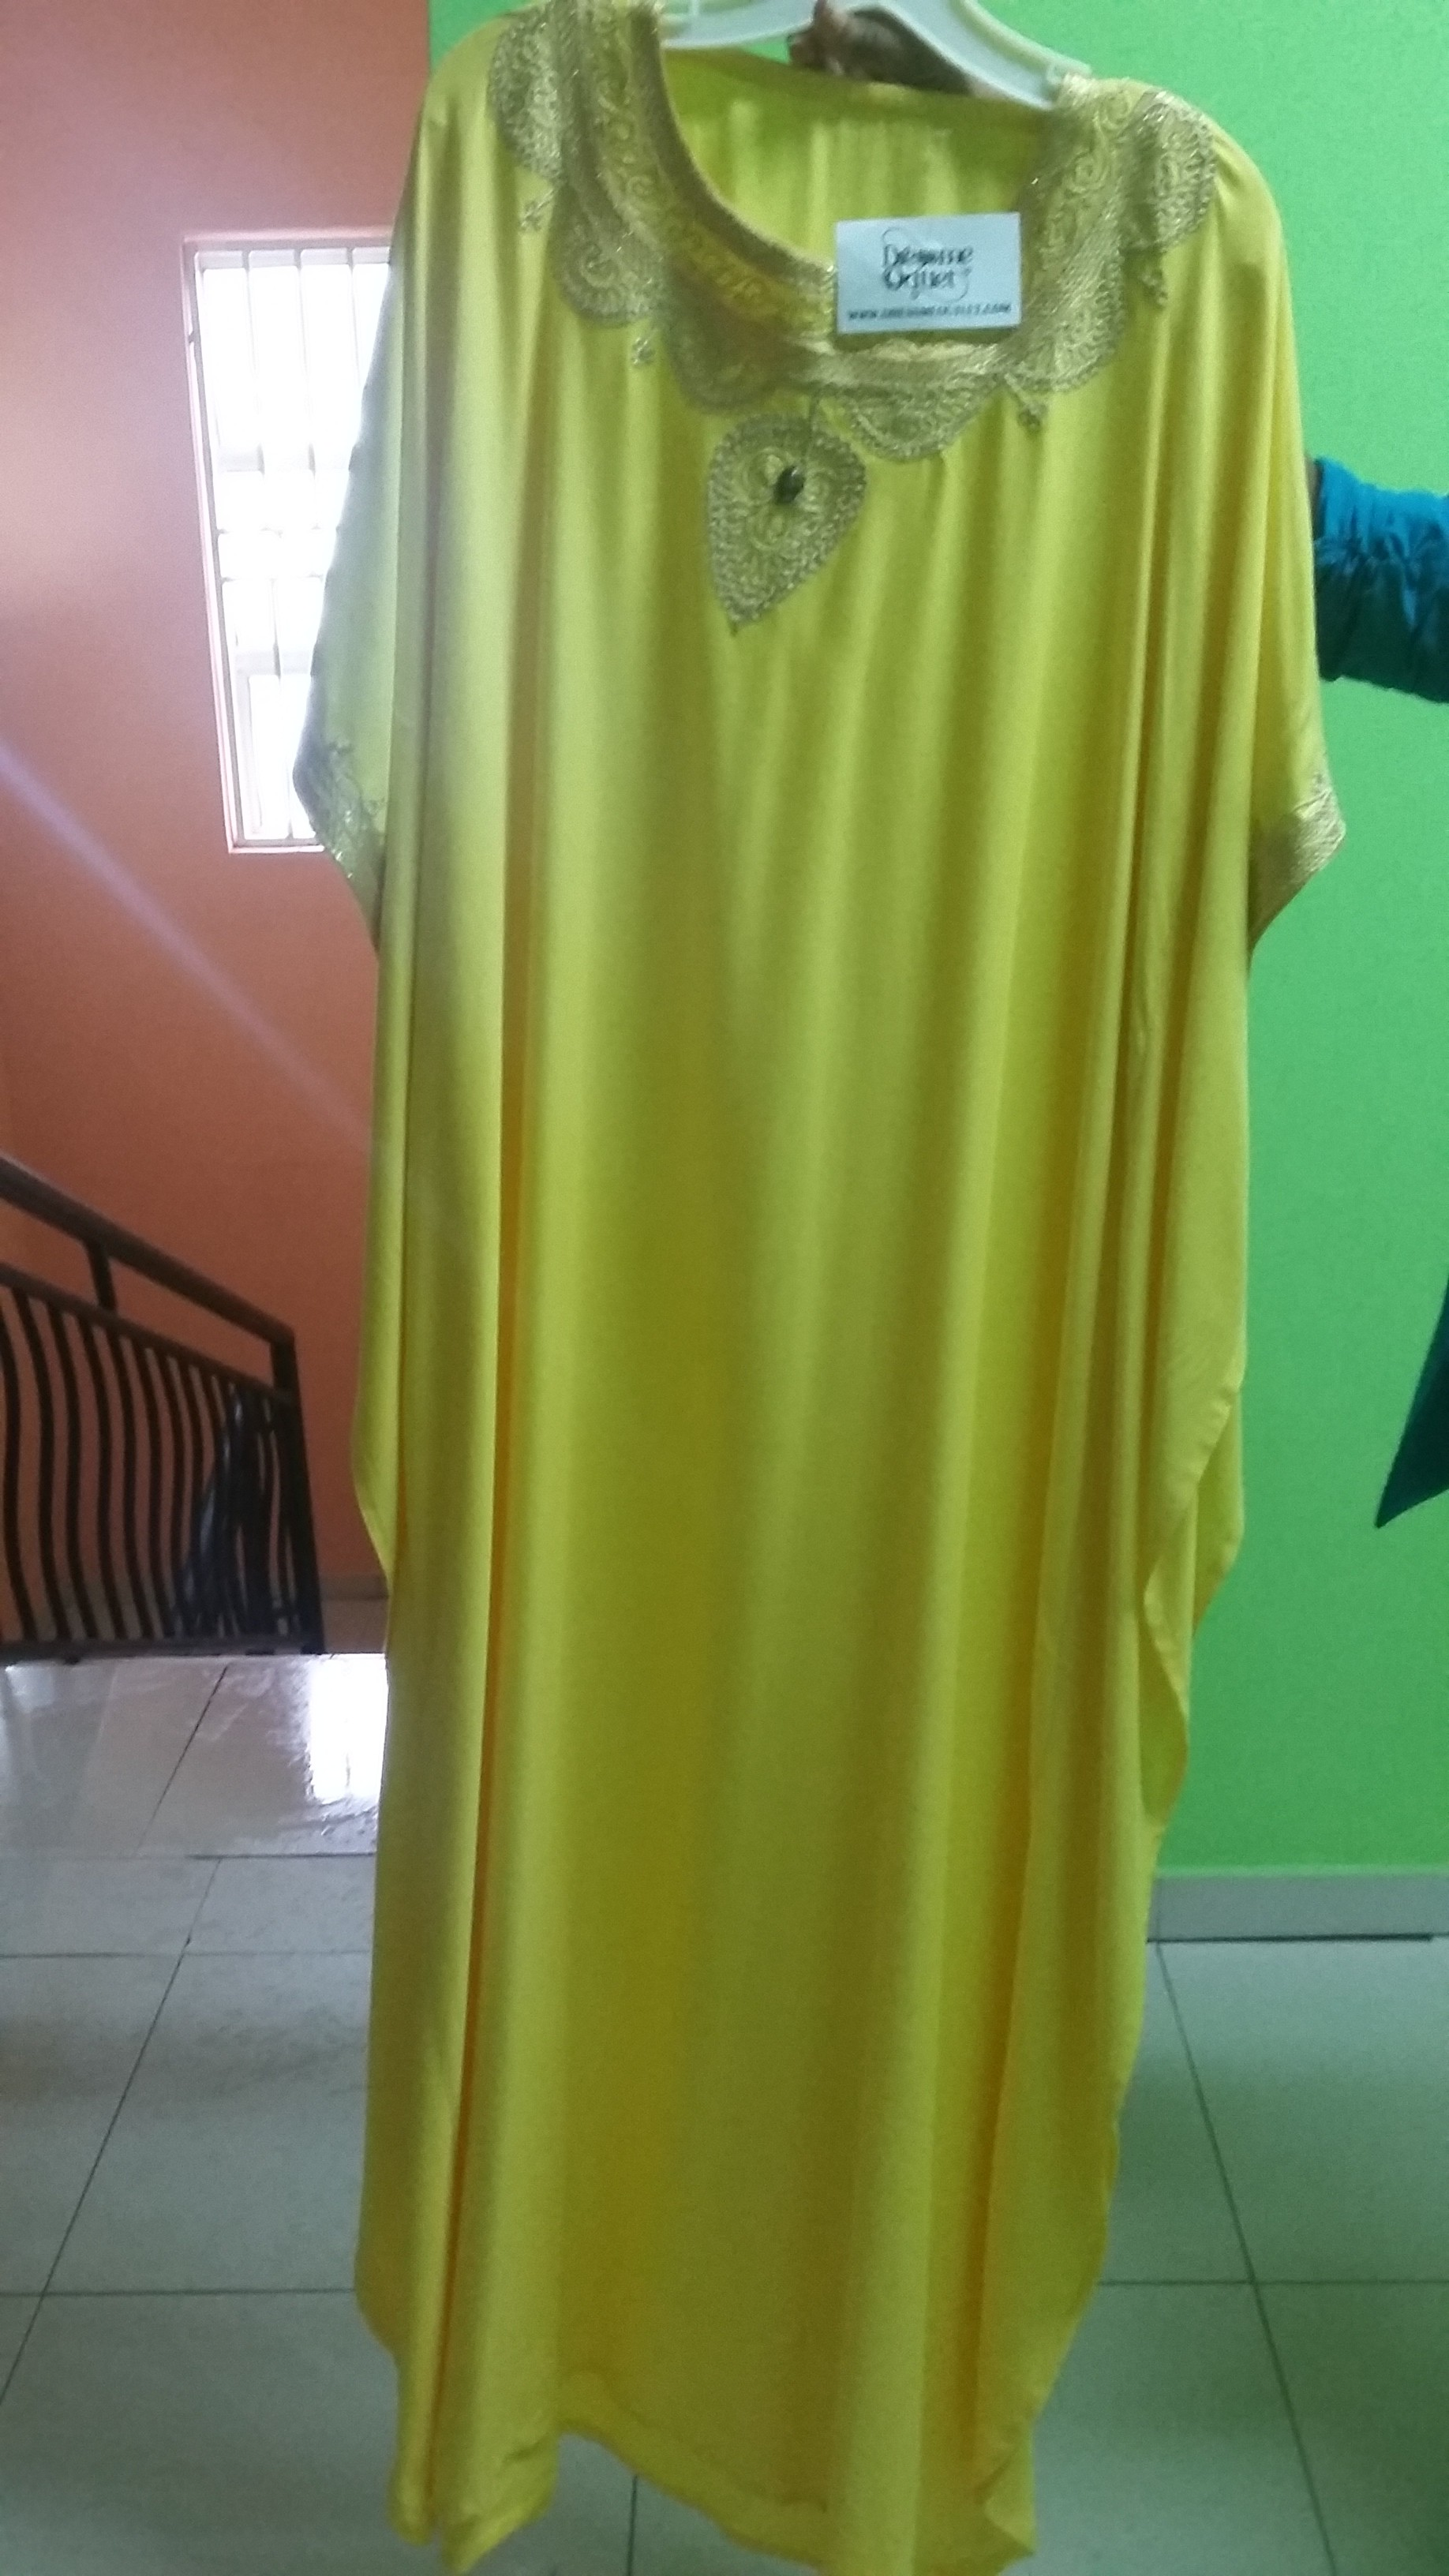 That's it -my yellow long dress